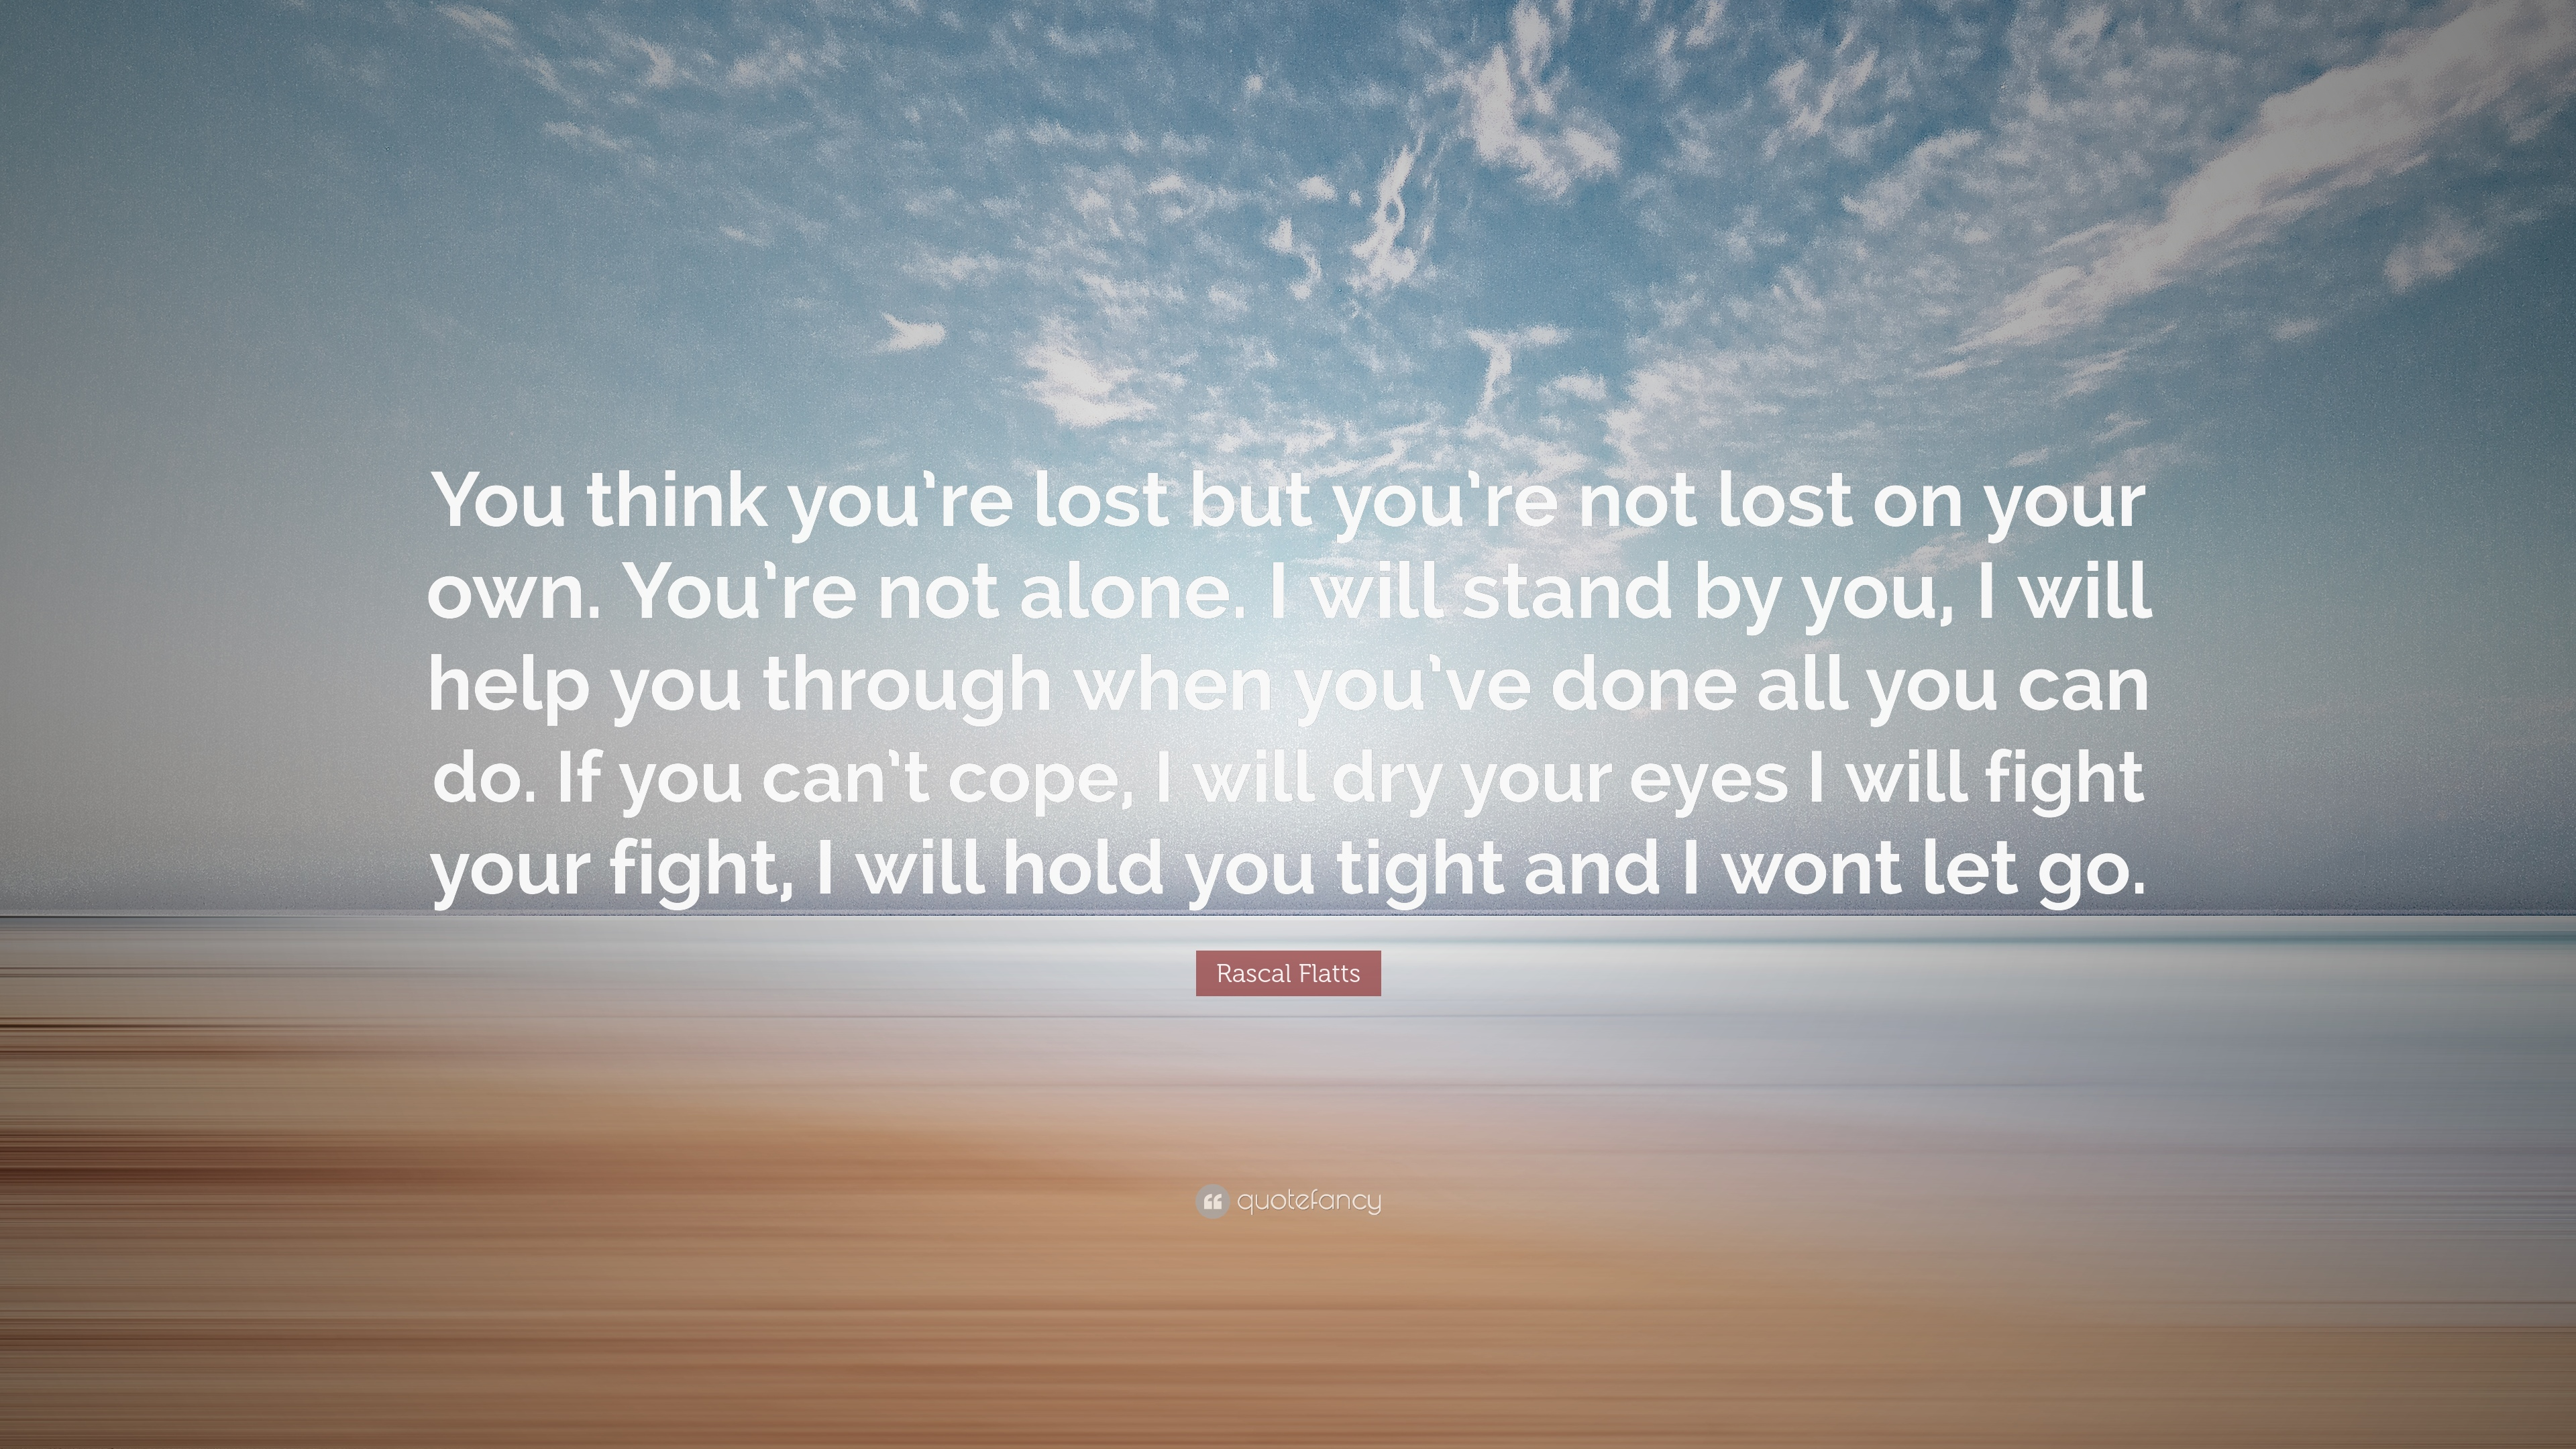 Rascal Flatts Quote You Think Youre Lost But Youre Not Lost On